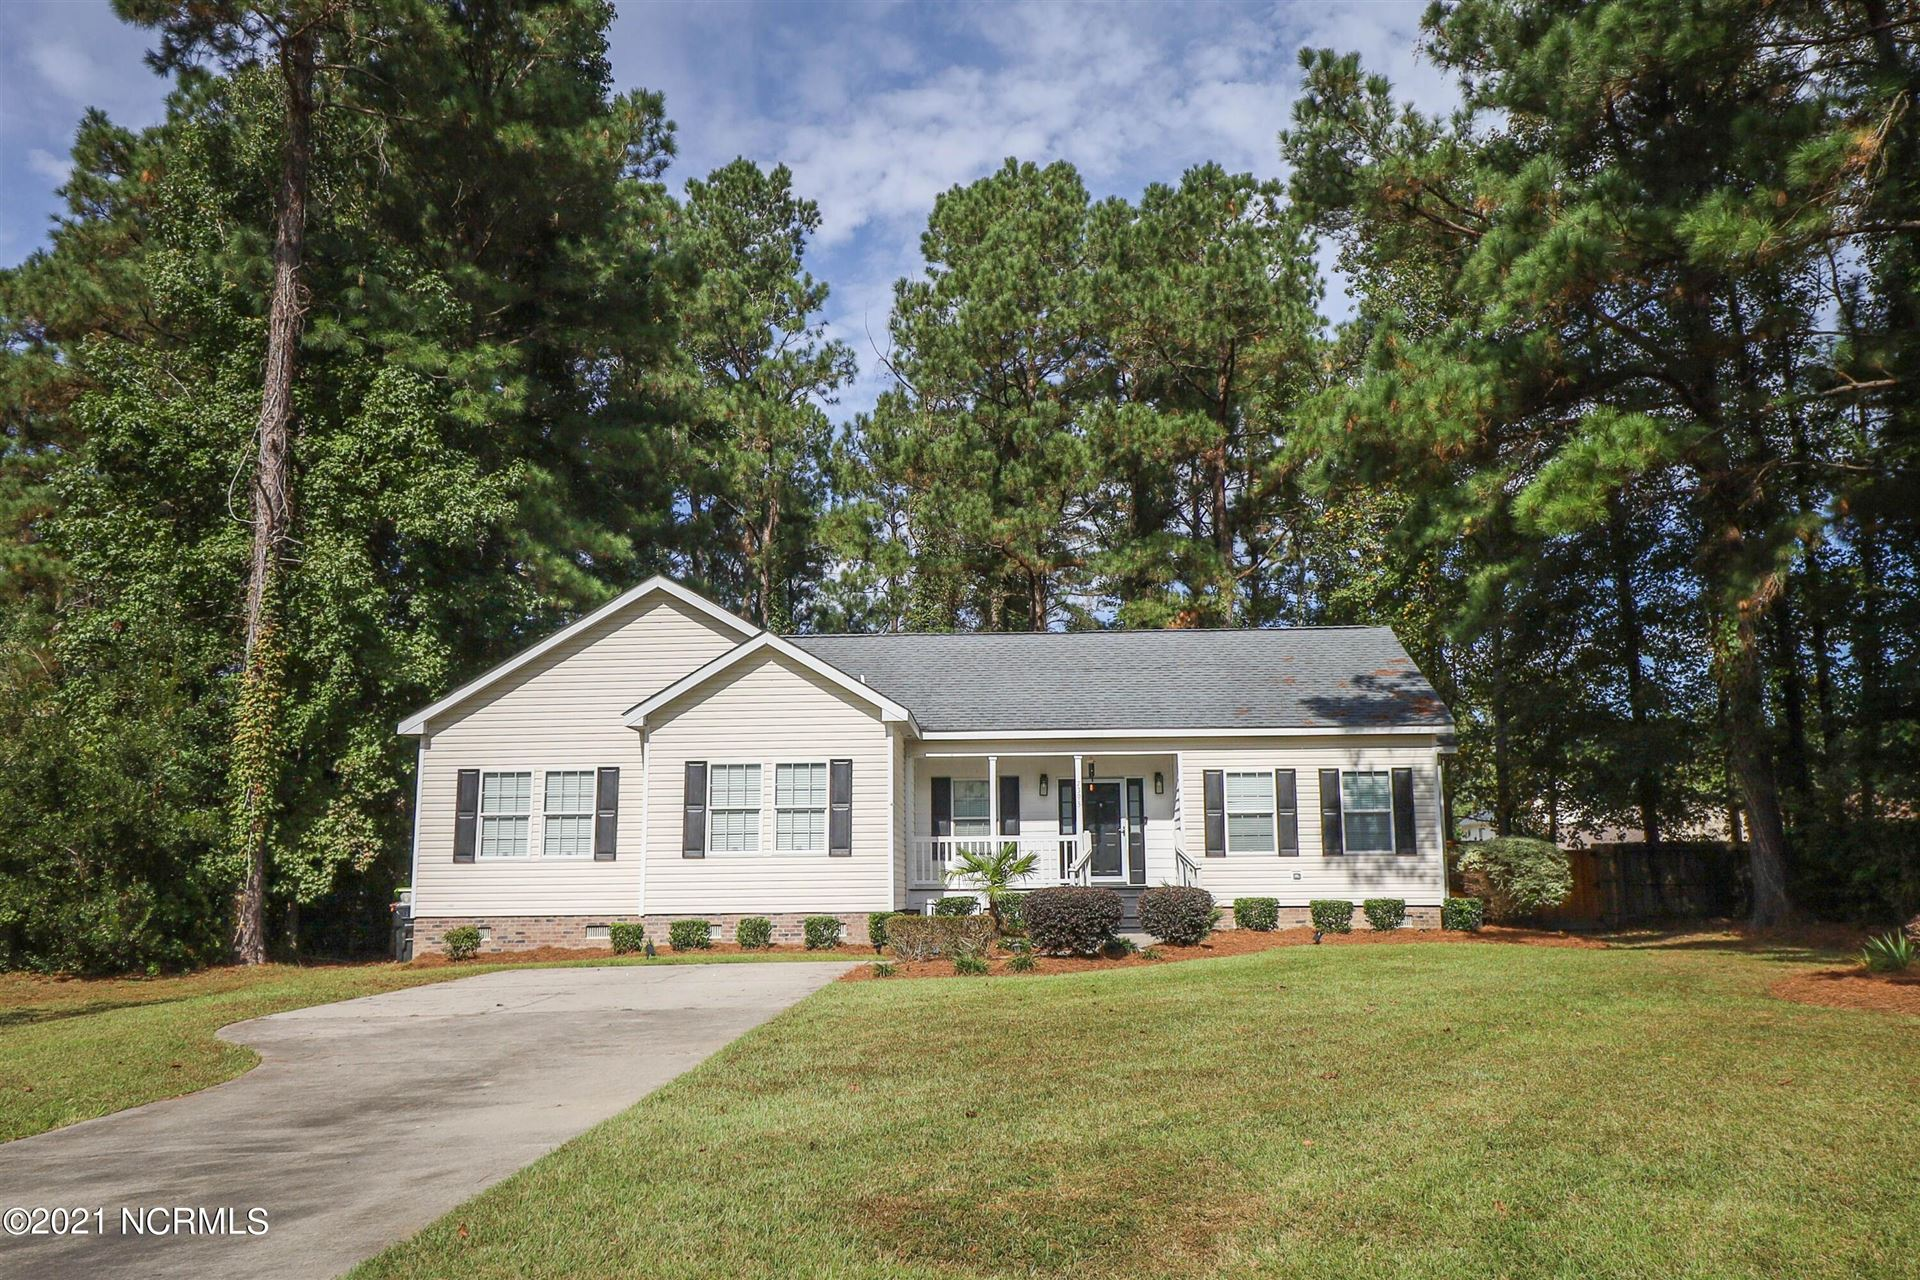 Photo of 7395 Red Stone Court, Belville, NC 28451 (MLS # 100296188)